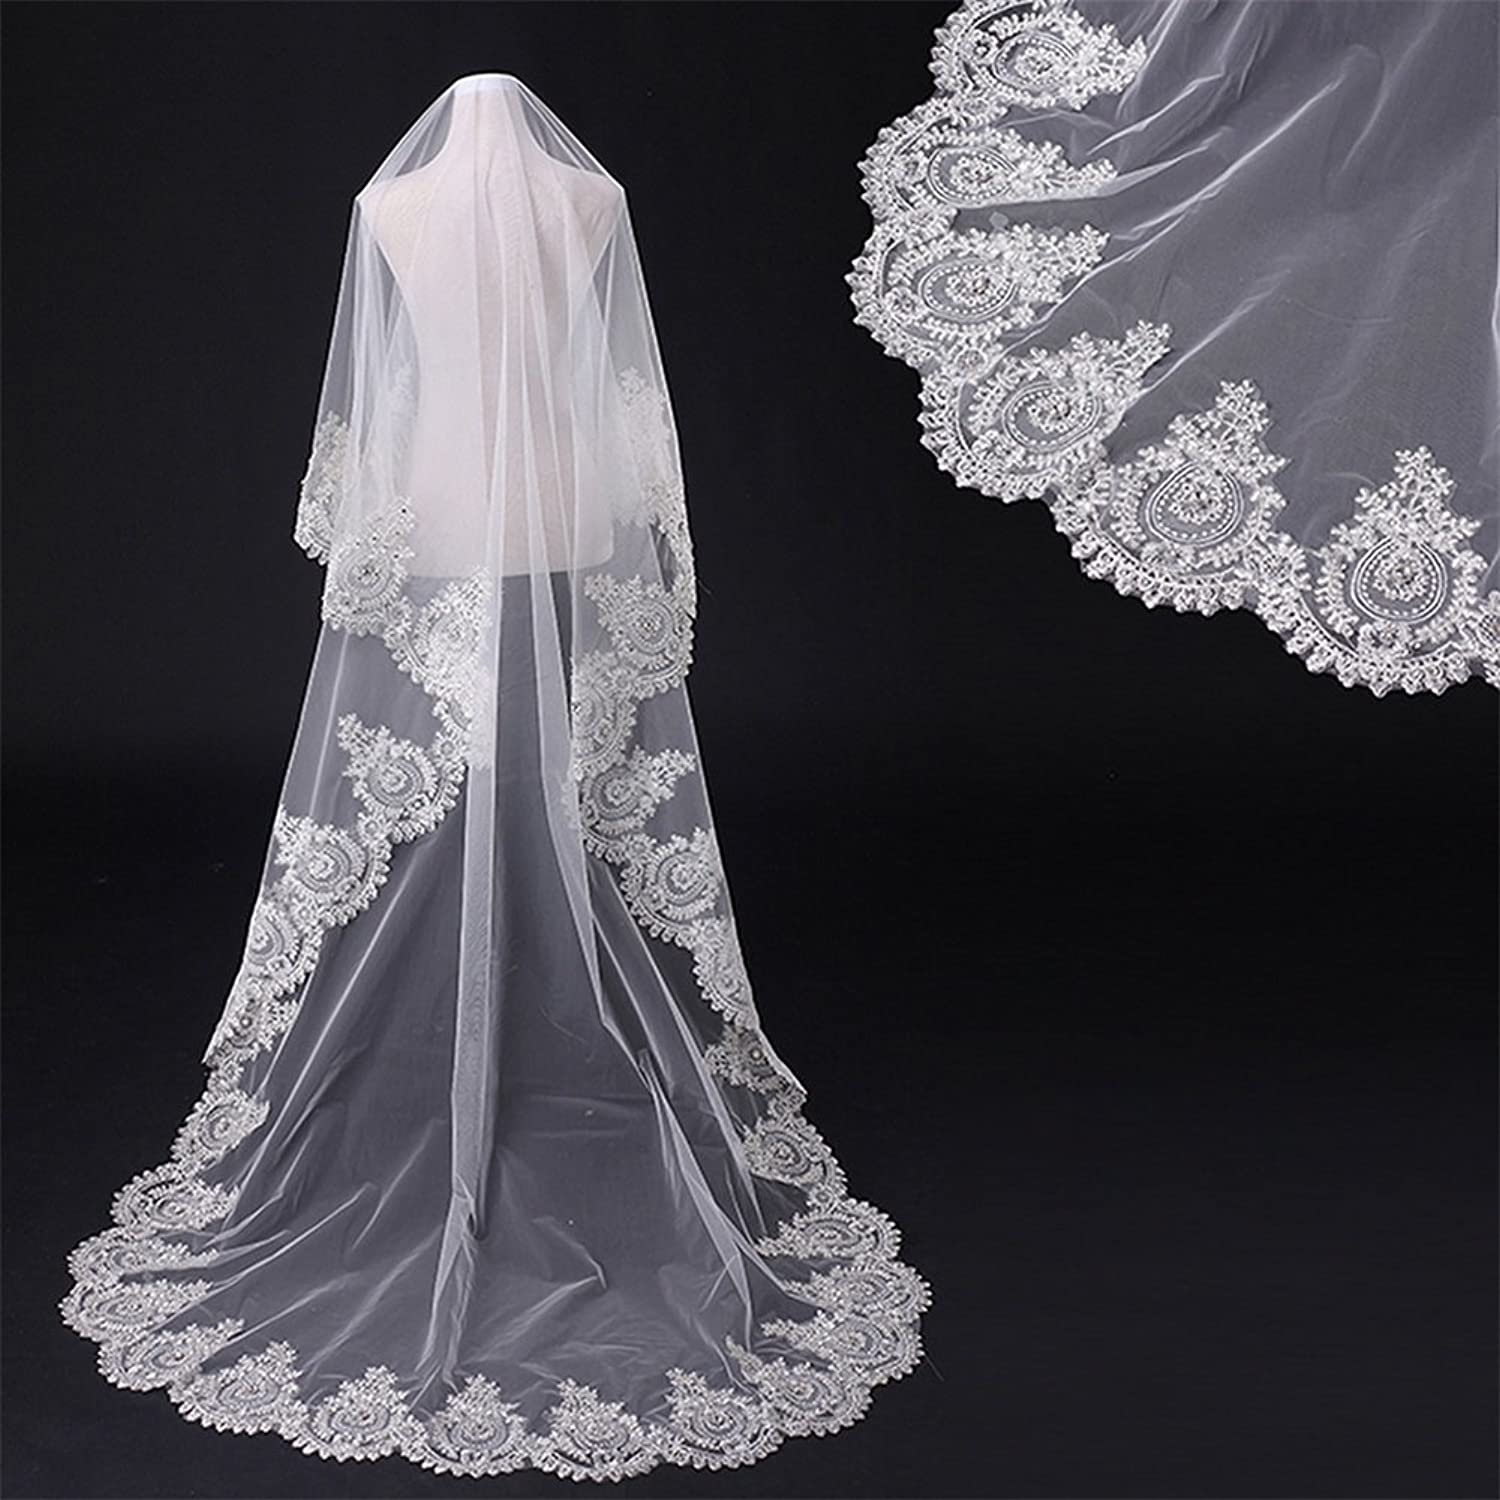 Bridal Veil Wedding Veils with Shinning Beads Sequins Lace Edge Cathedral Bride Veils Wedding Accessories Ivory